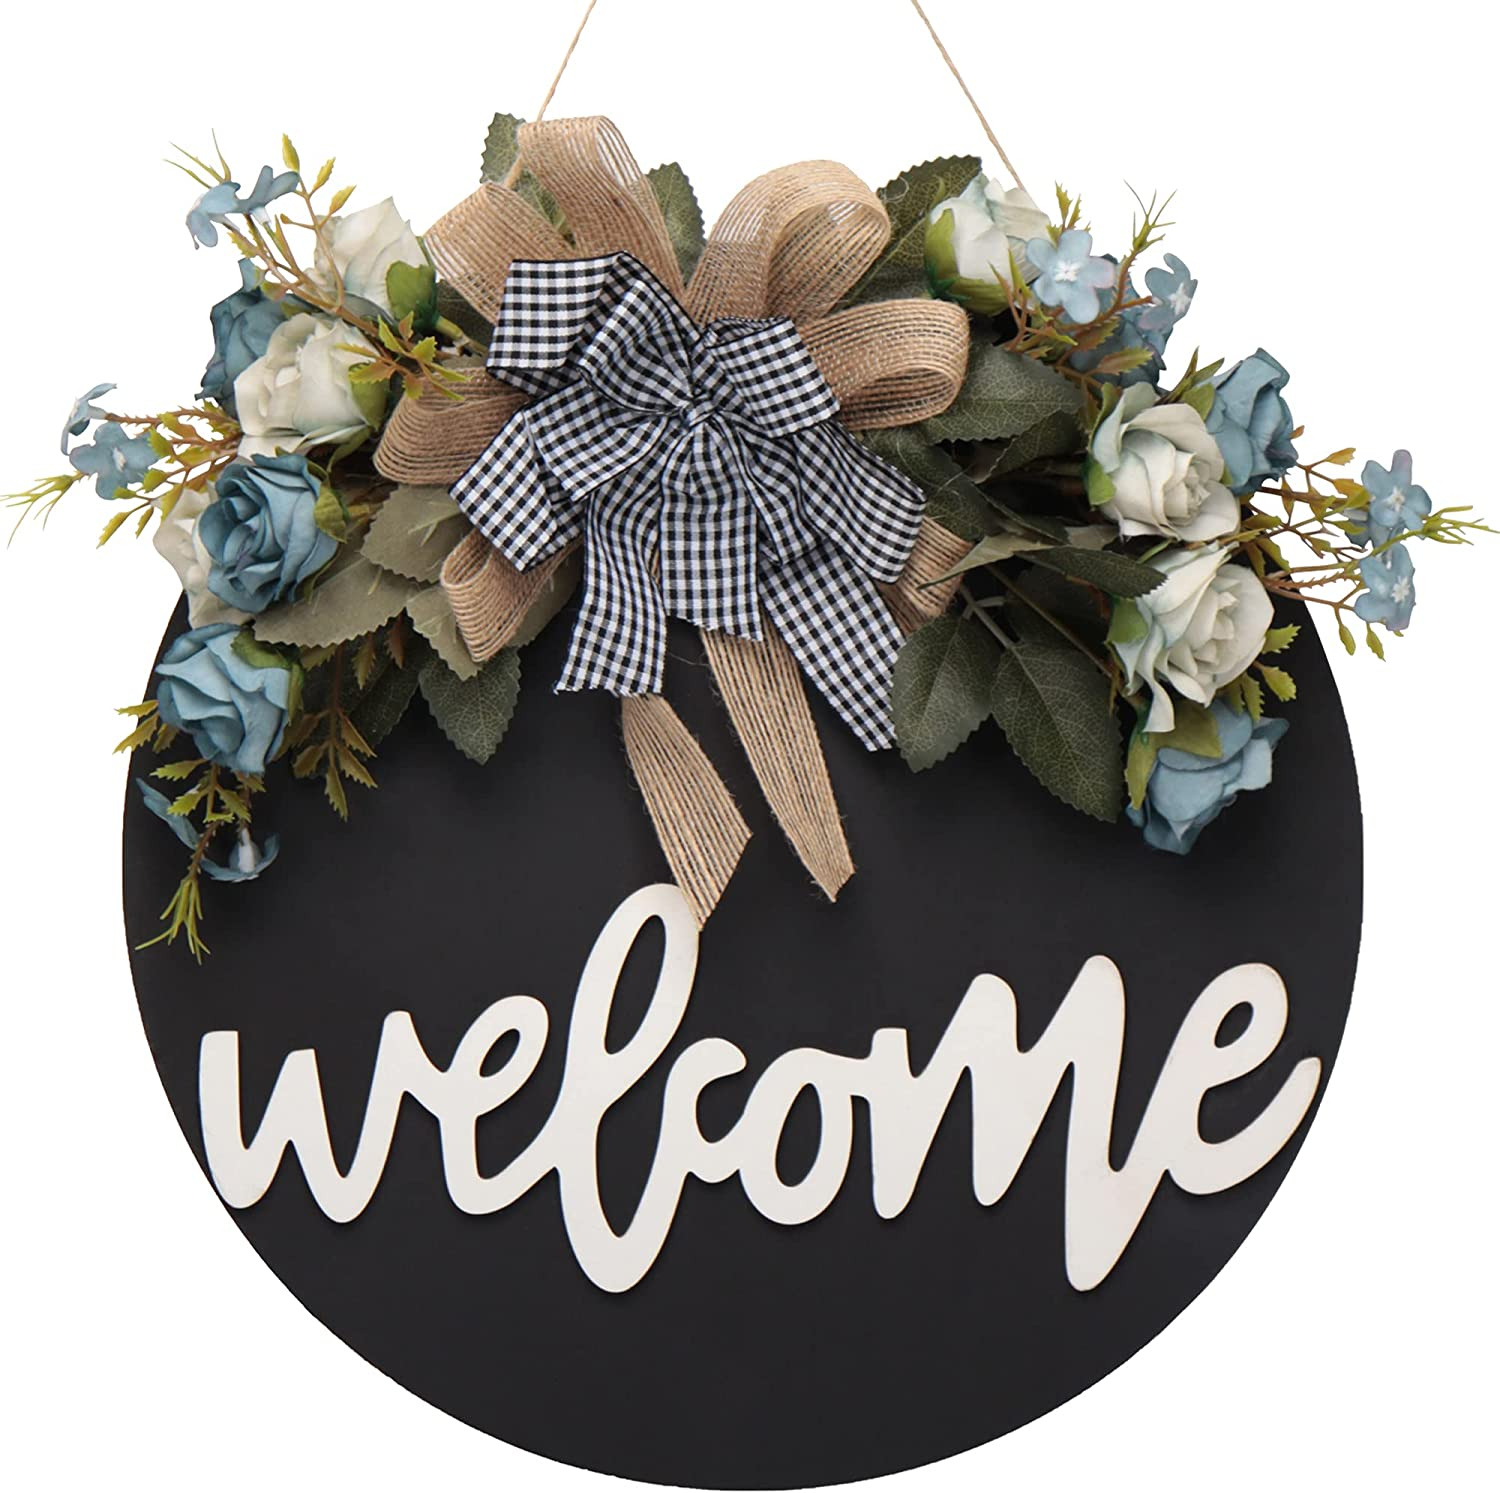 Welcome sign for front door hello spring wreaths for front door decor summer fall wreath welcome home sign Wreaths for Front Door Farmhouse wall Decor Porch wreath for front door Decorations Gifts (A)